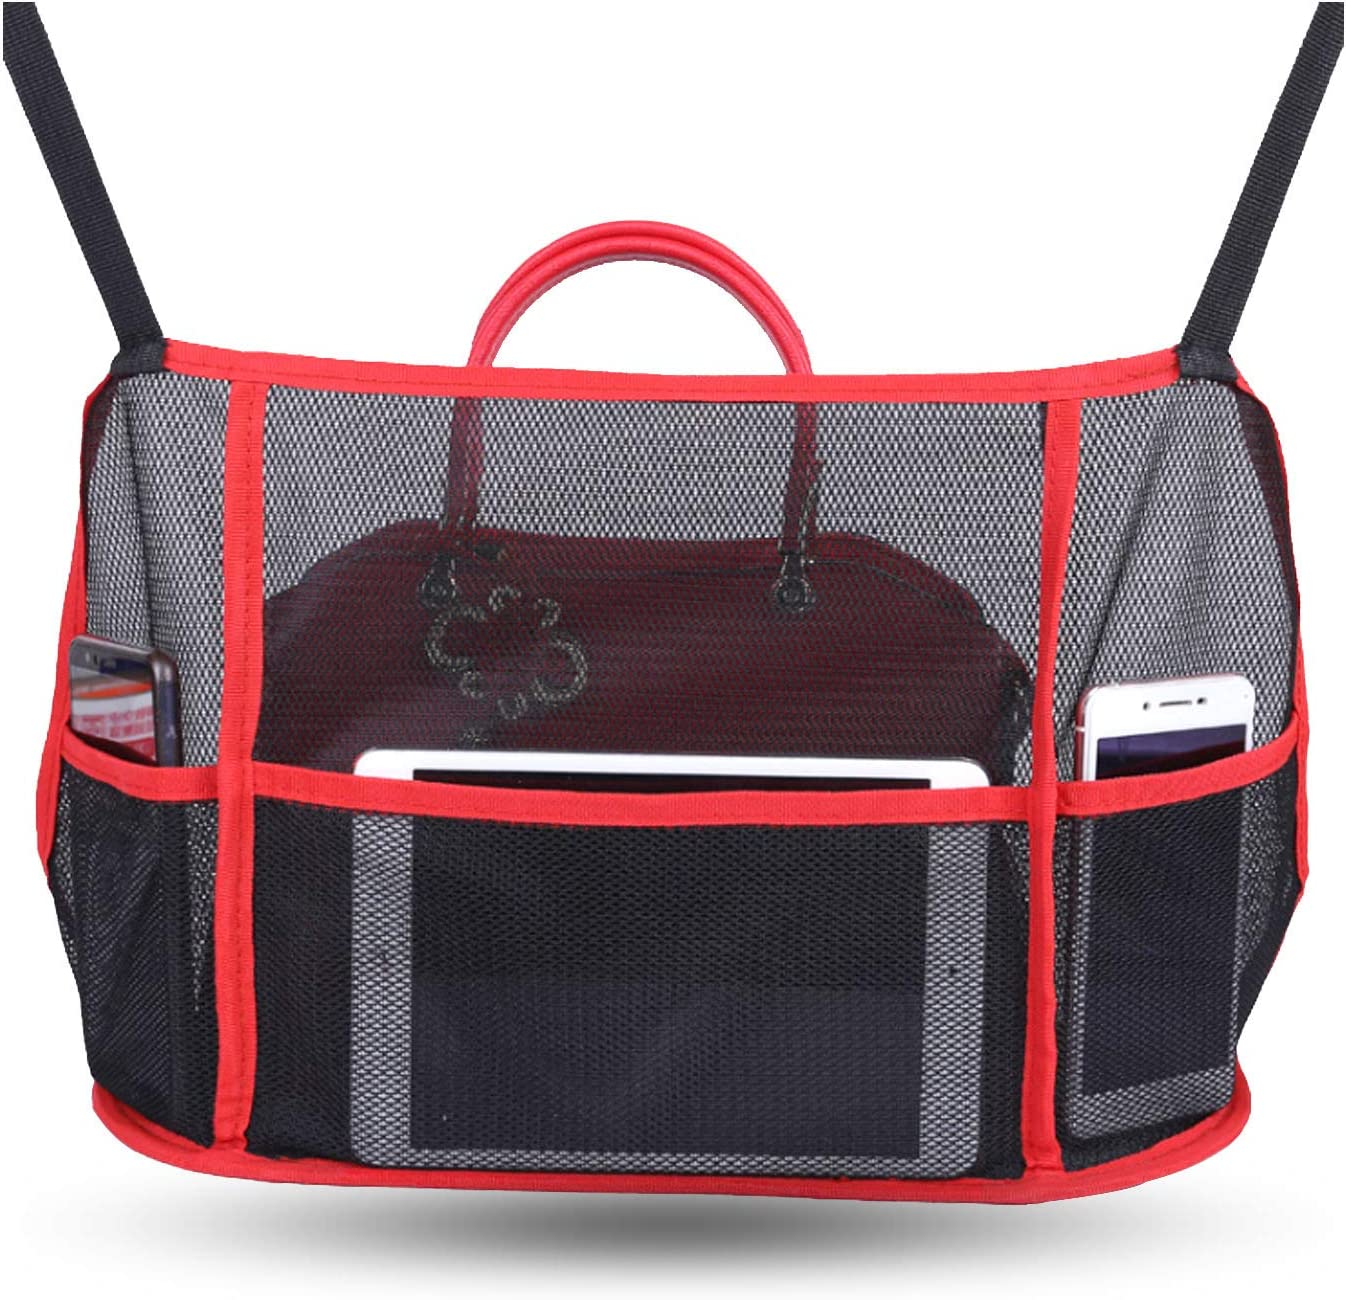 Car Net Pocket Handbag Holder Special price for Award a limited time Seats Between Purse C